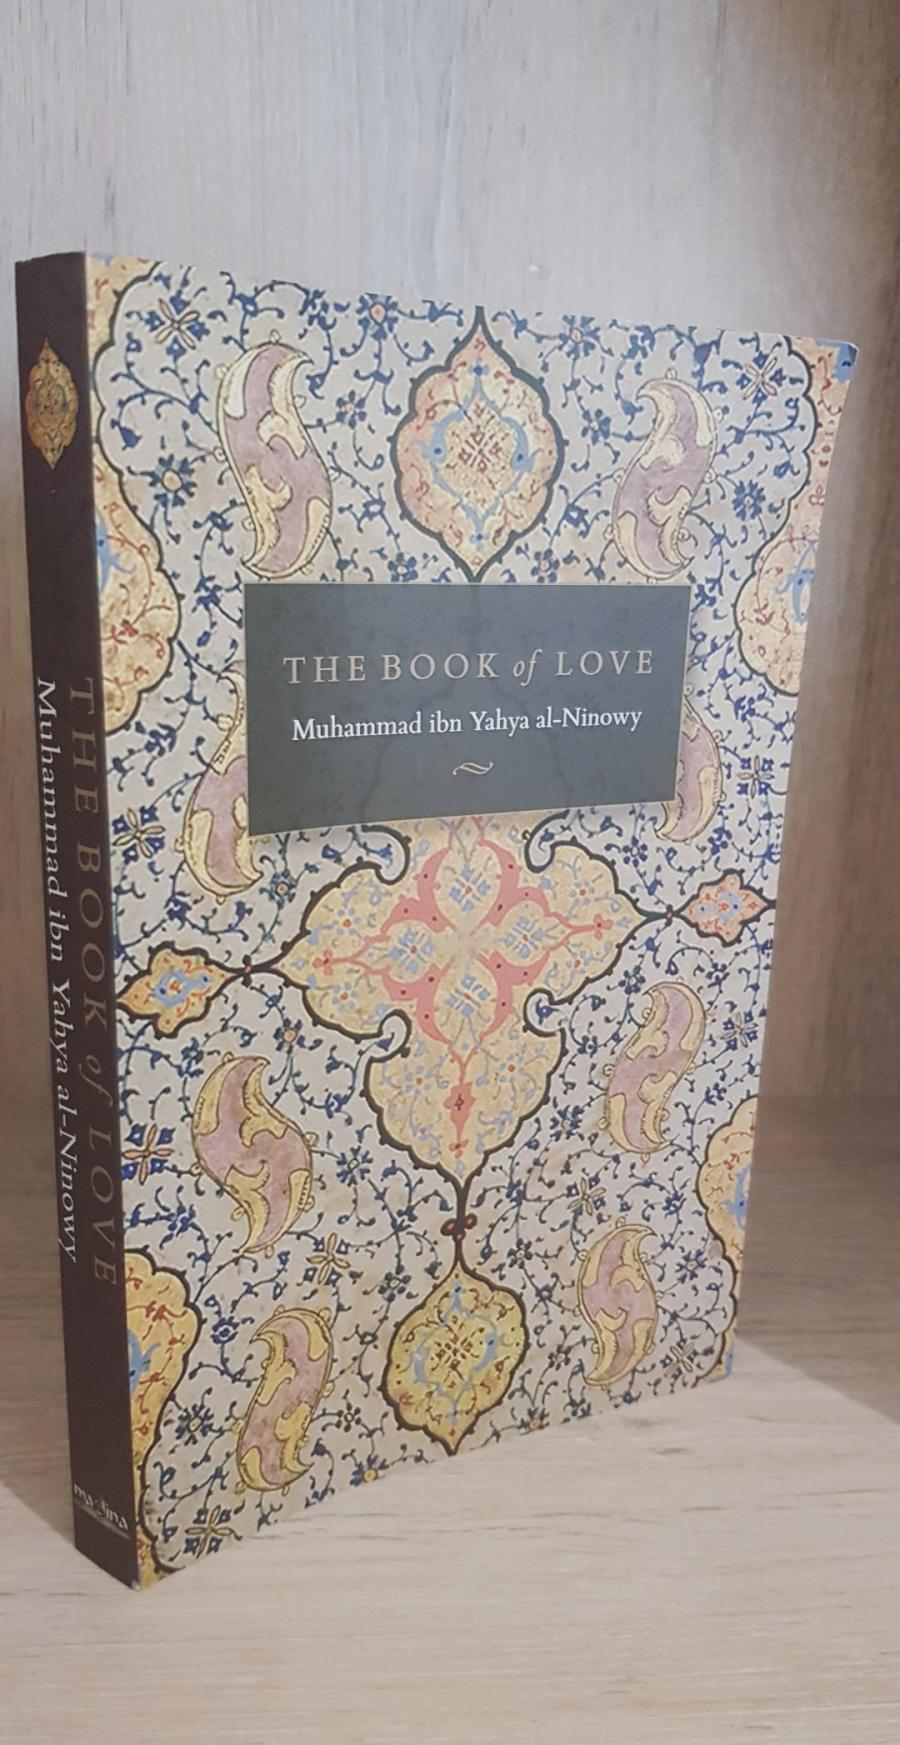 The Book of Love - Muhammad bin Yahya al-Ninowy